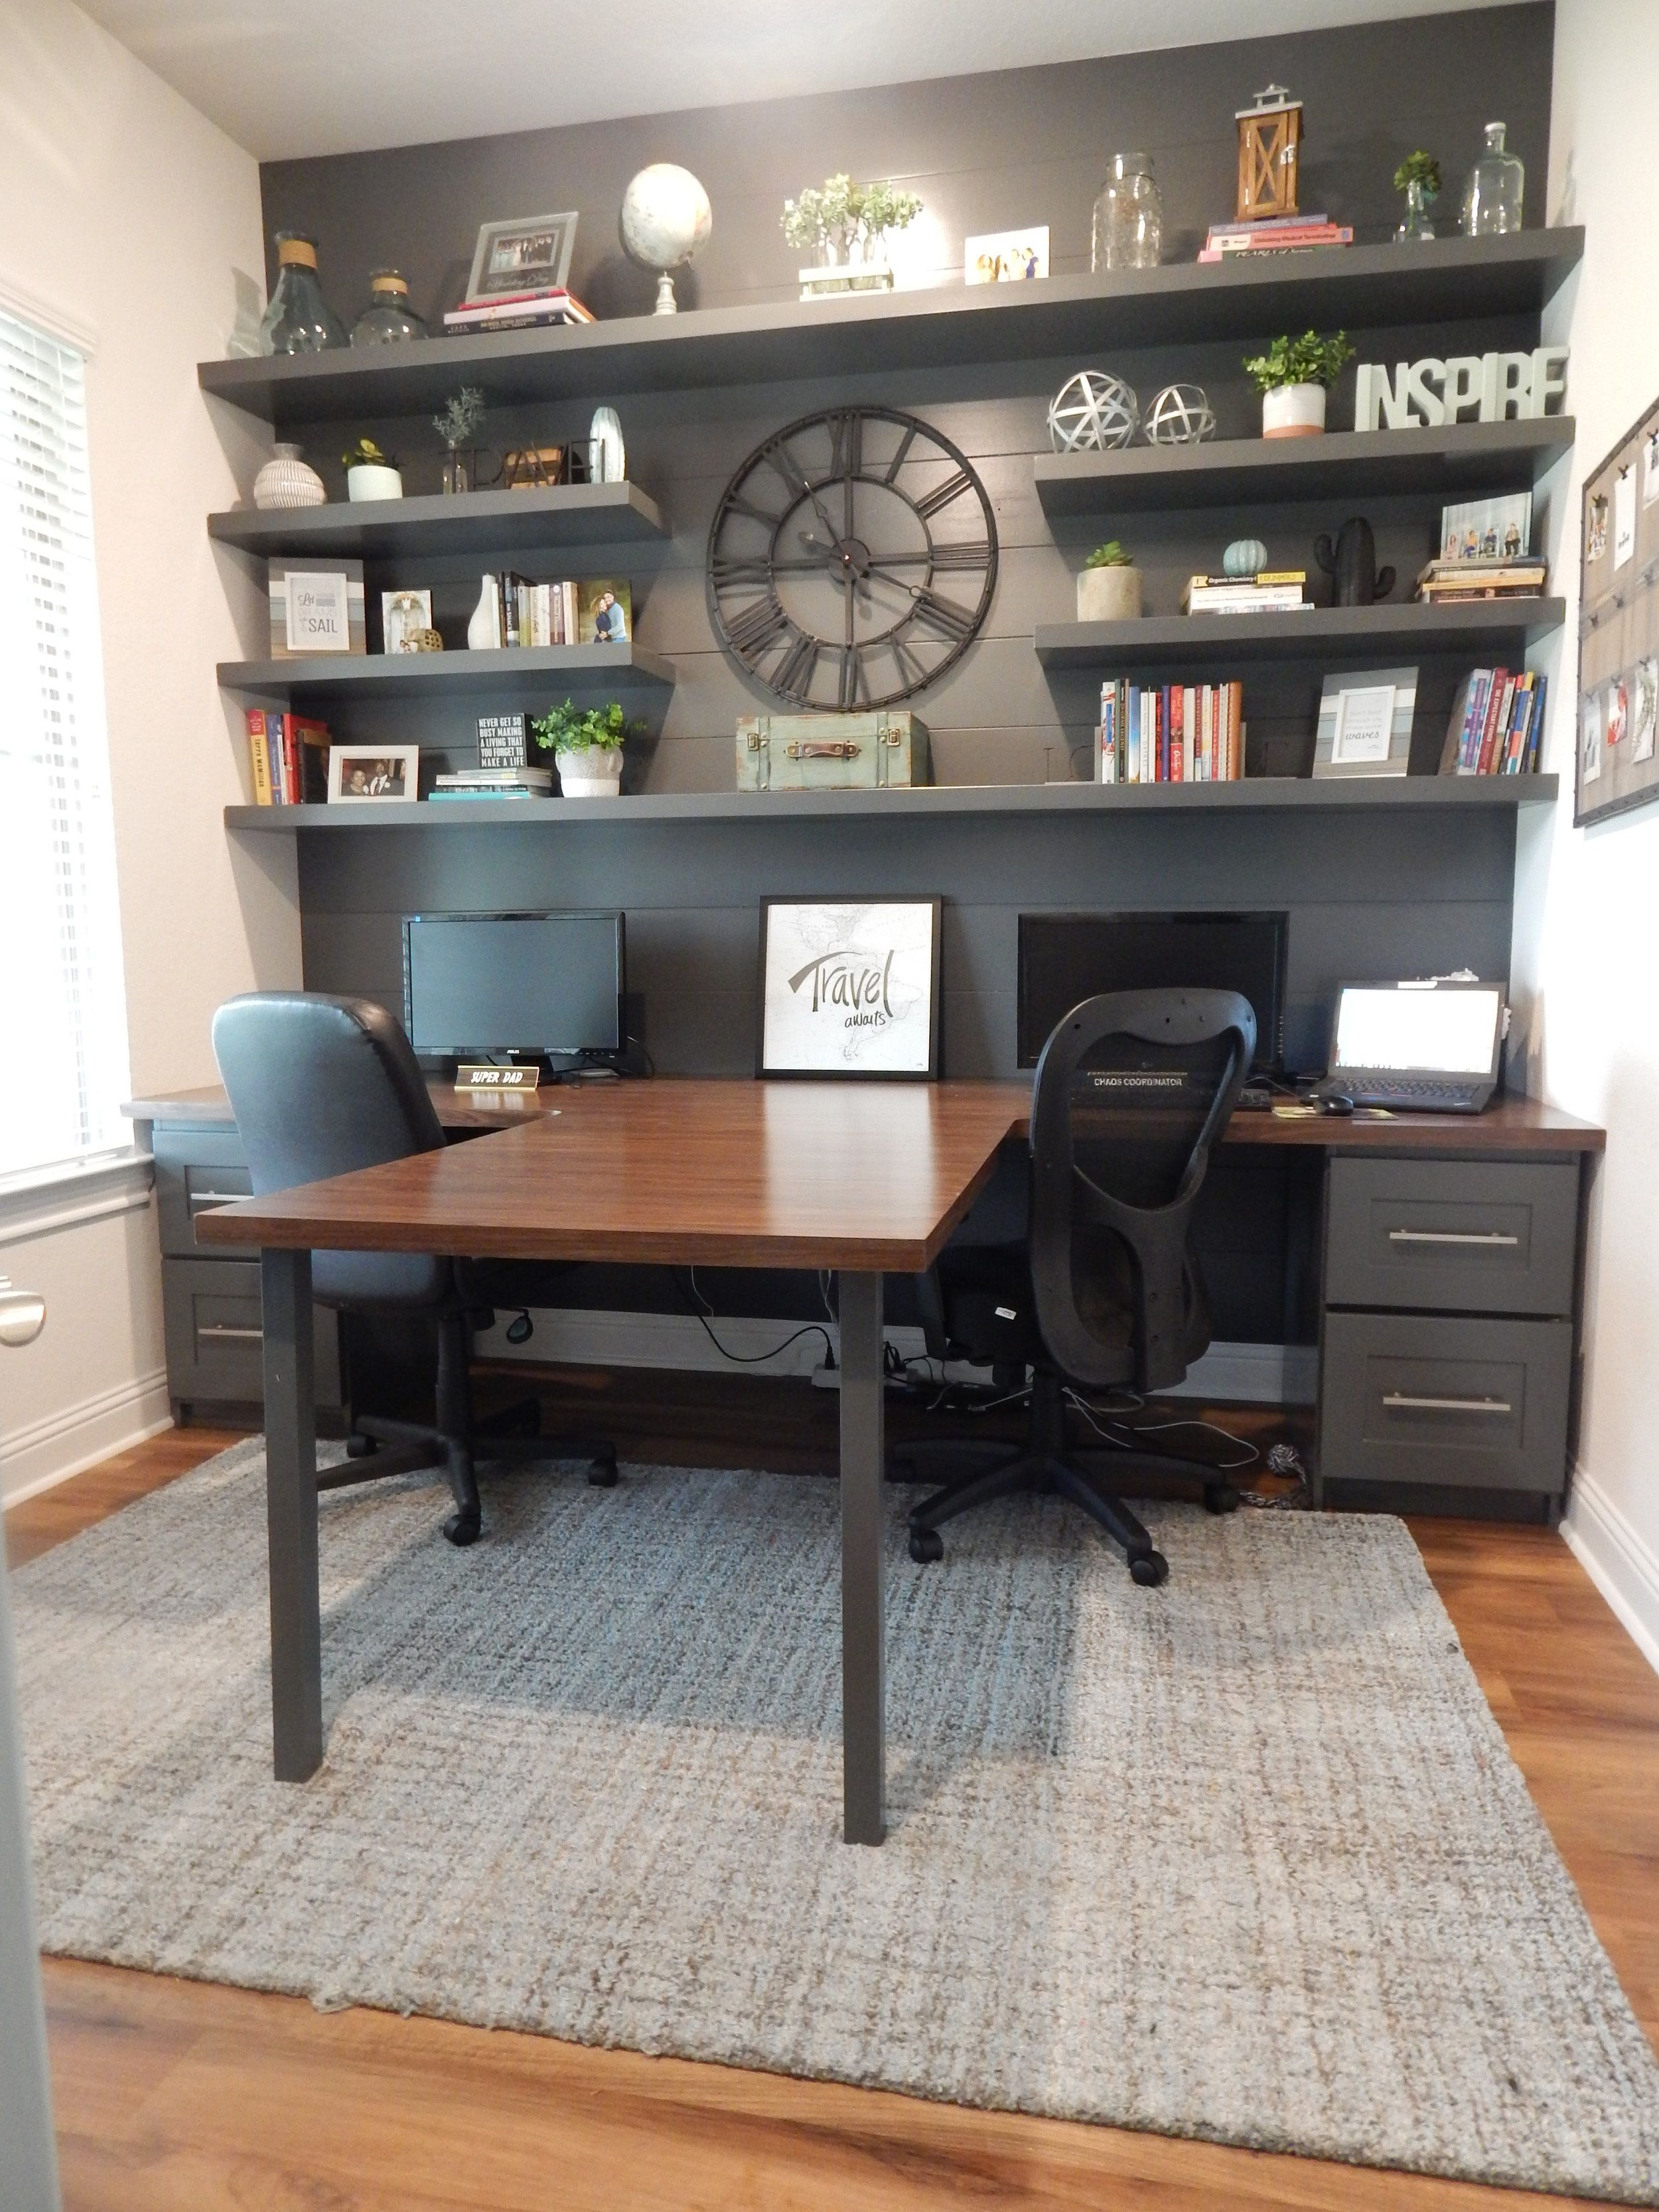 The Office T Shaped Desk Home Office Design Home Office Space Home Office Decor